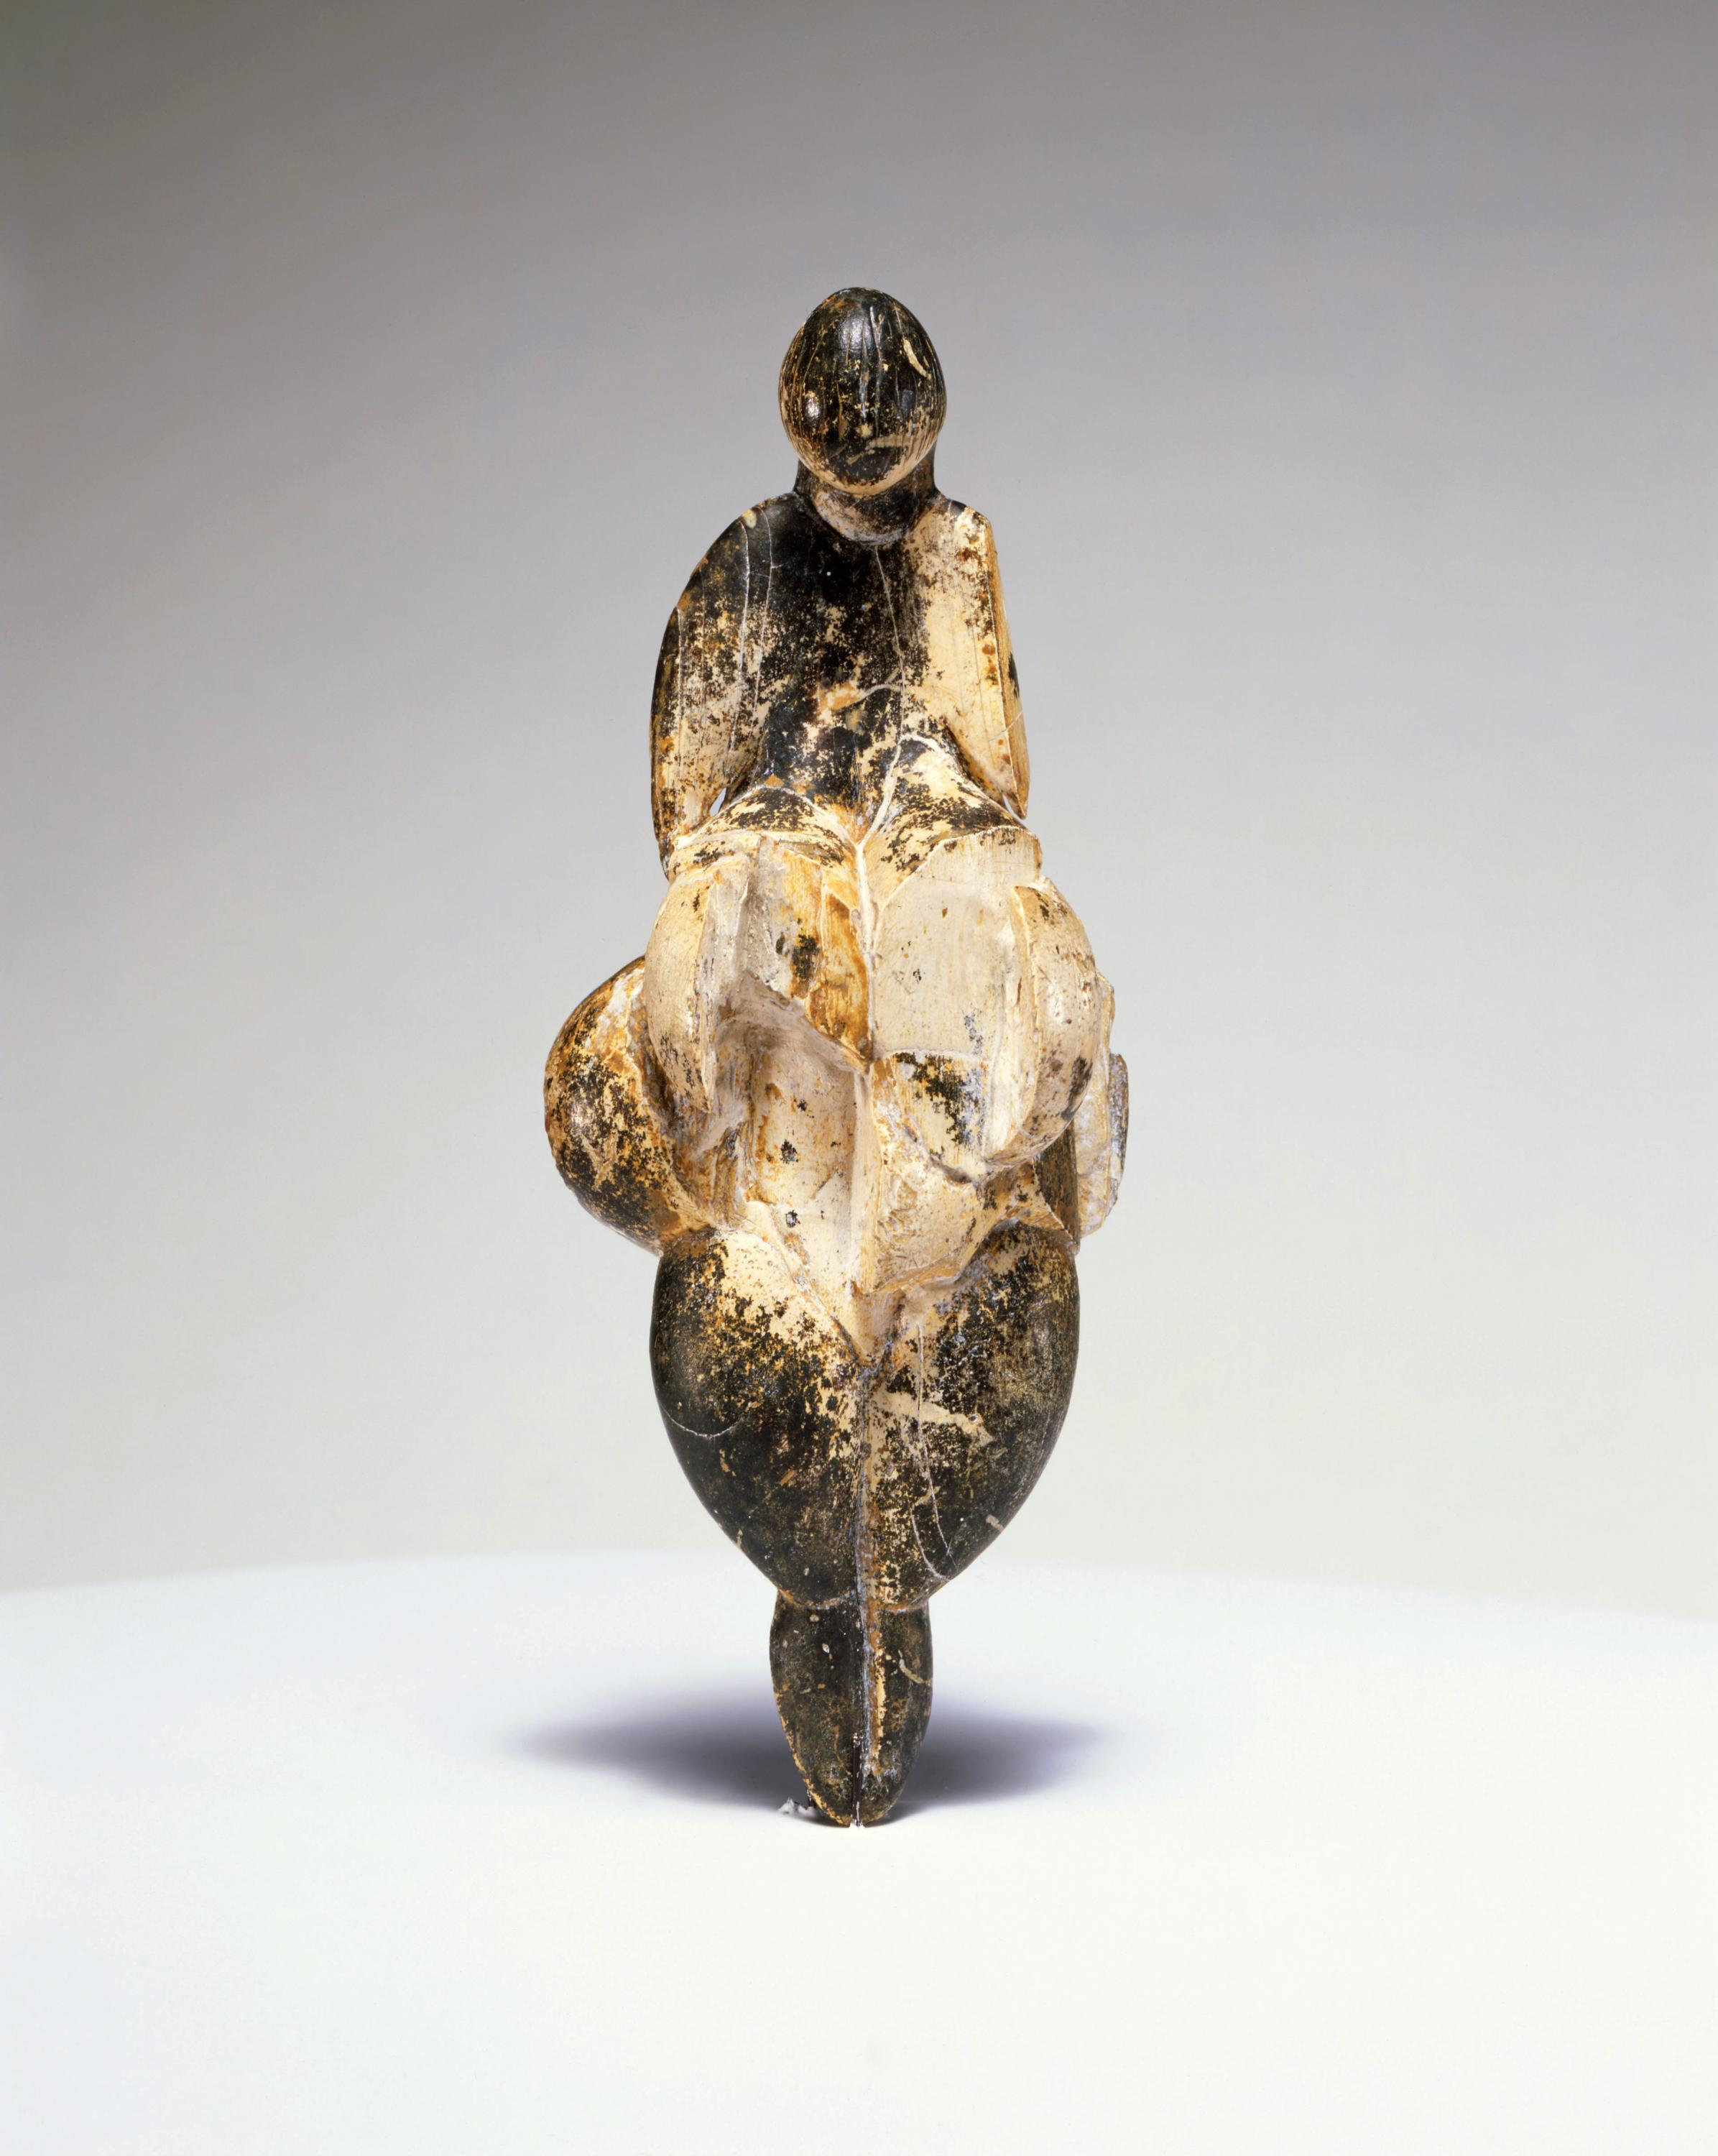 The venus of Lespugue, a statuette carved from mammoth ivory some 23,000 years ago, was found in the Rideaux cave in southern France in 1922. It appears in the exhibit courtesy of the Musée de l'Homme in Paris.